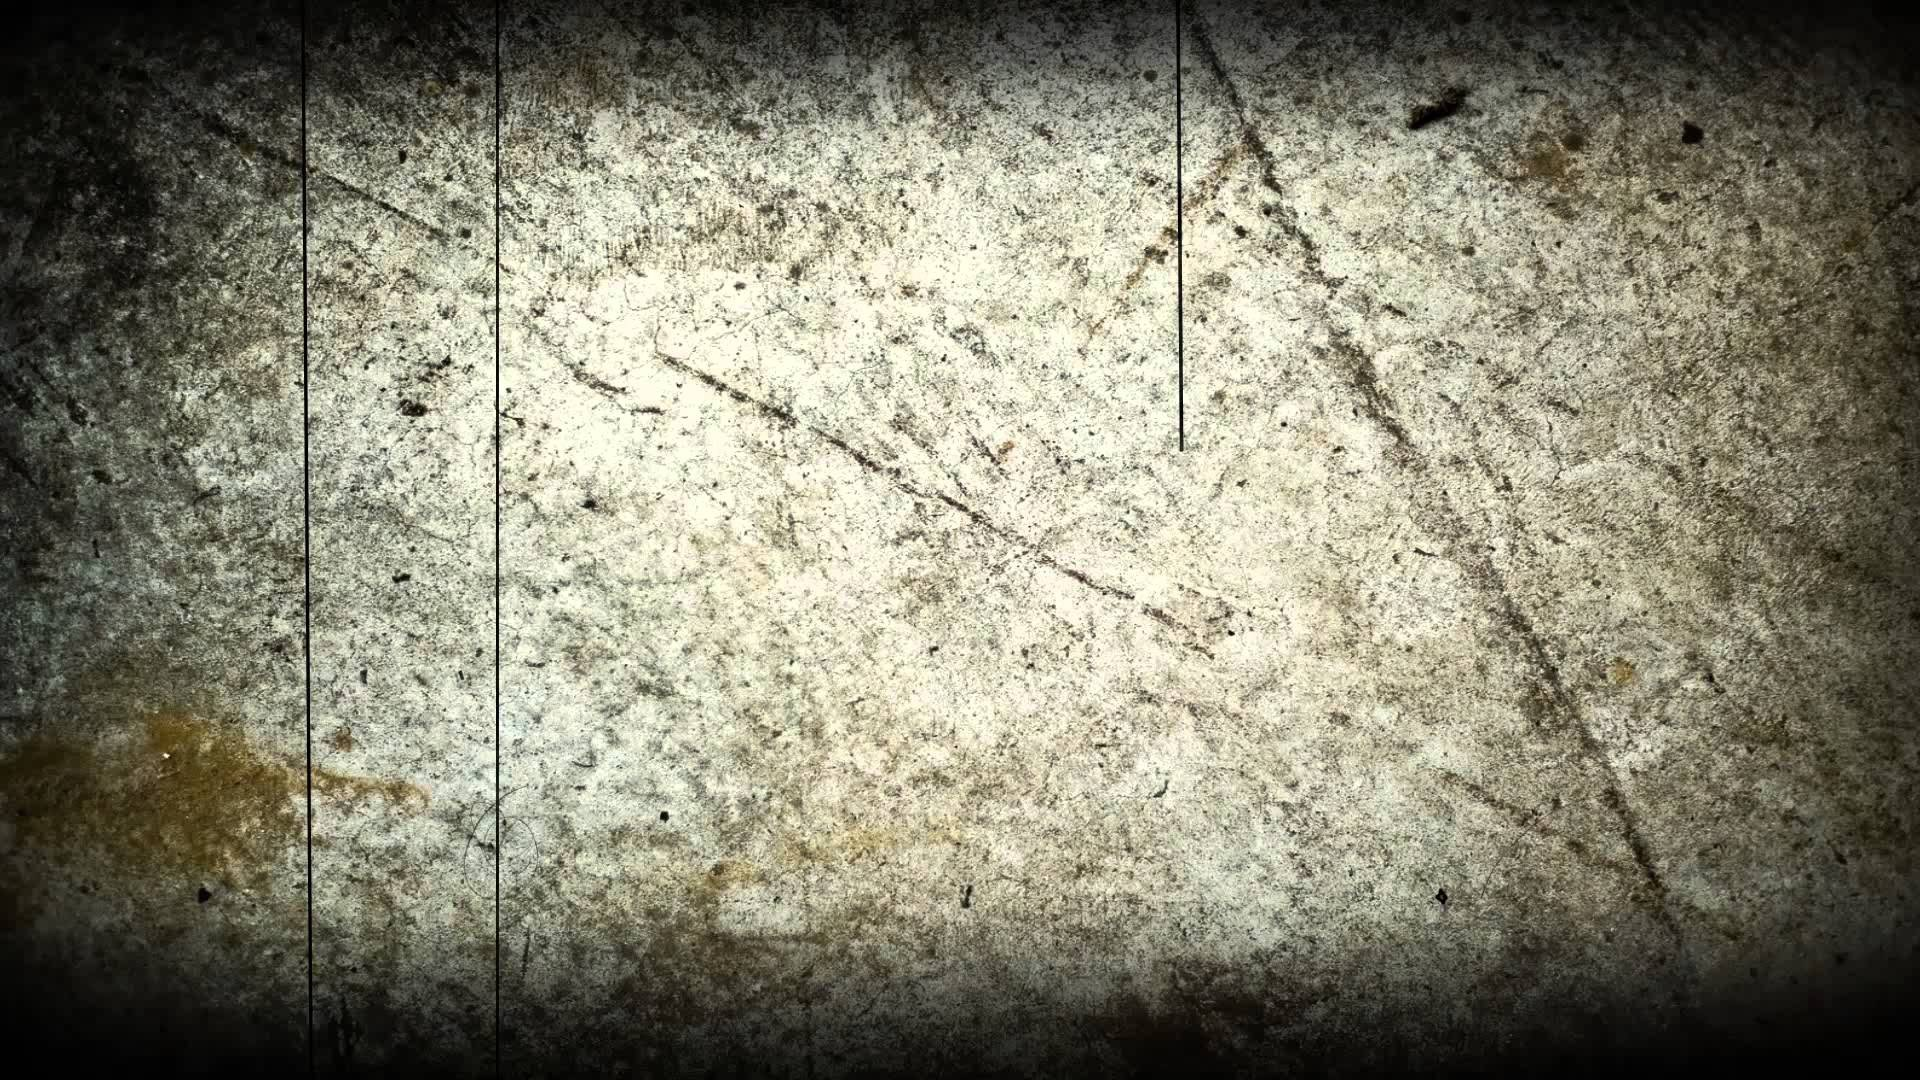 grunge background  u00b7 u2460 download free amazing full hd backgrounds for desktop and mobile devices in